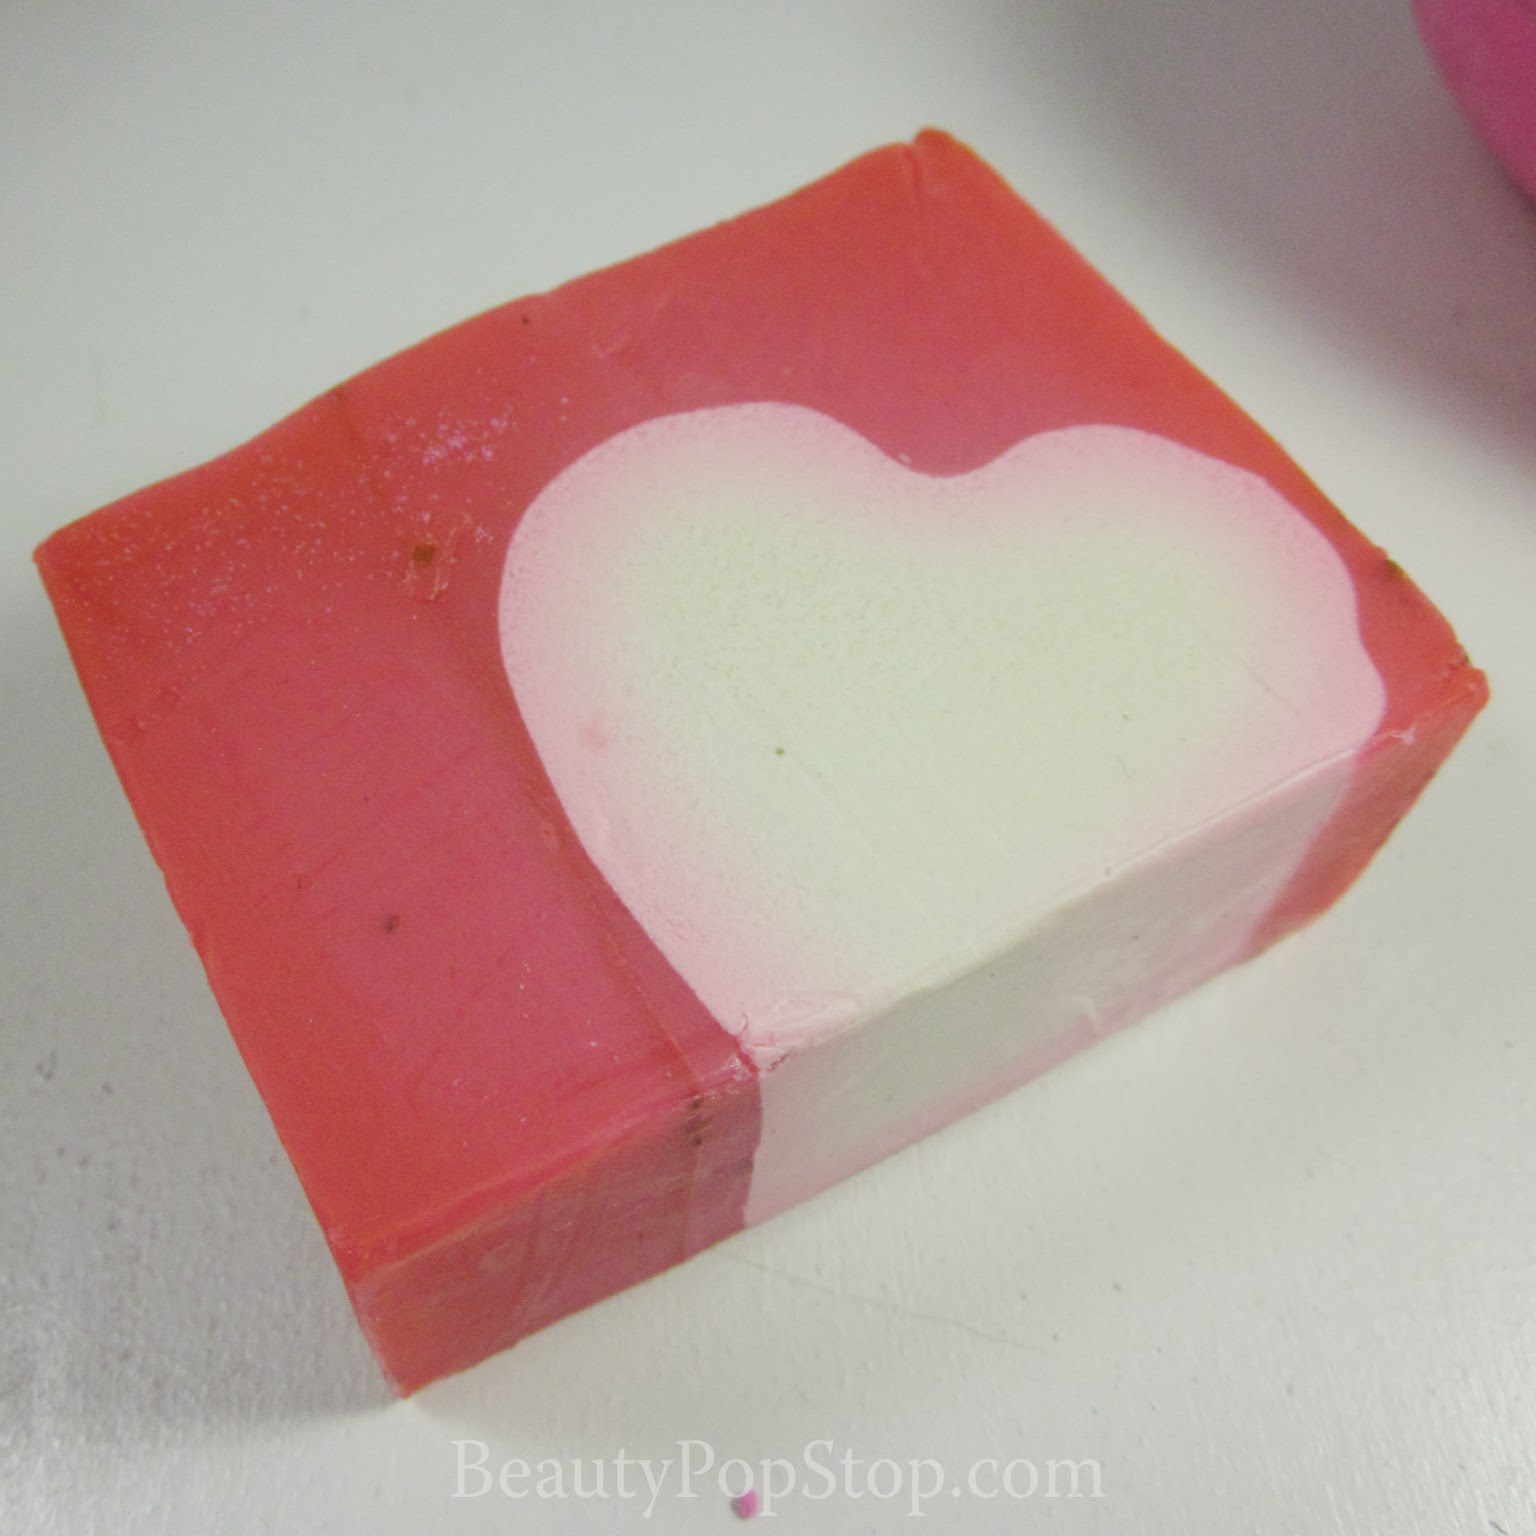 lush neon love soap review